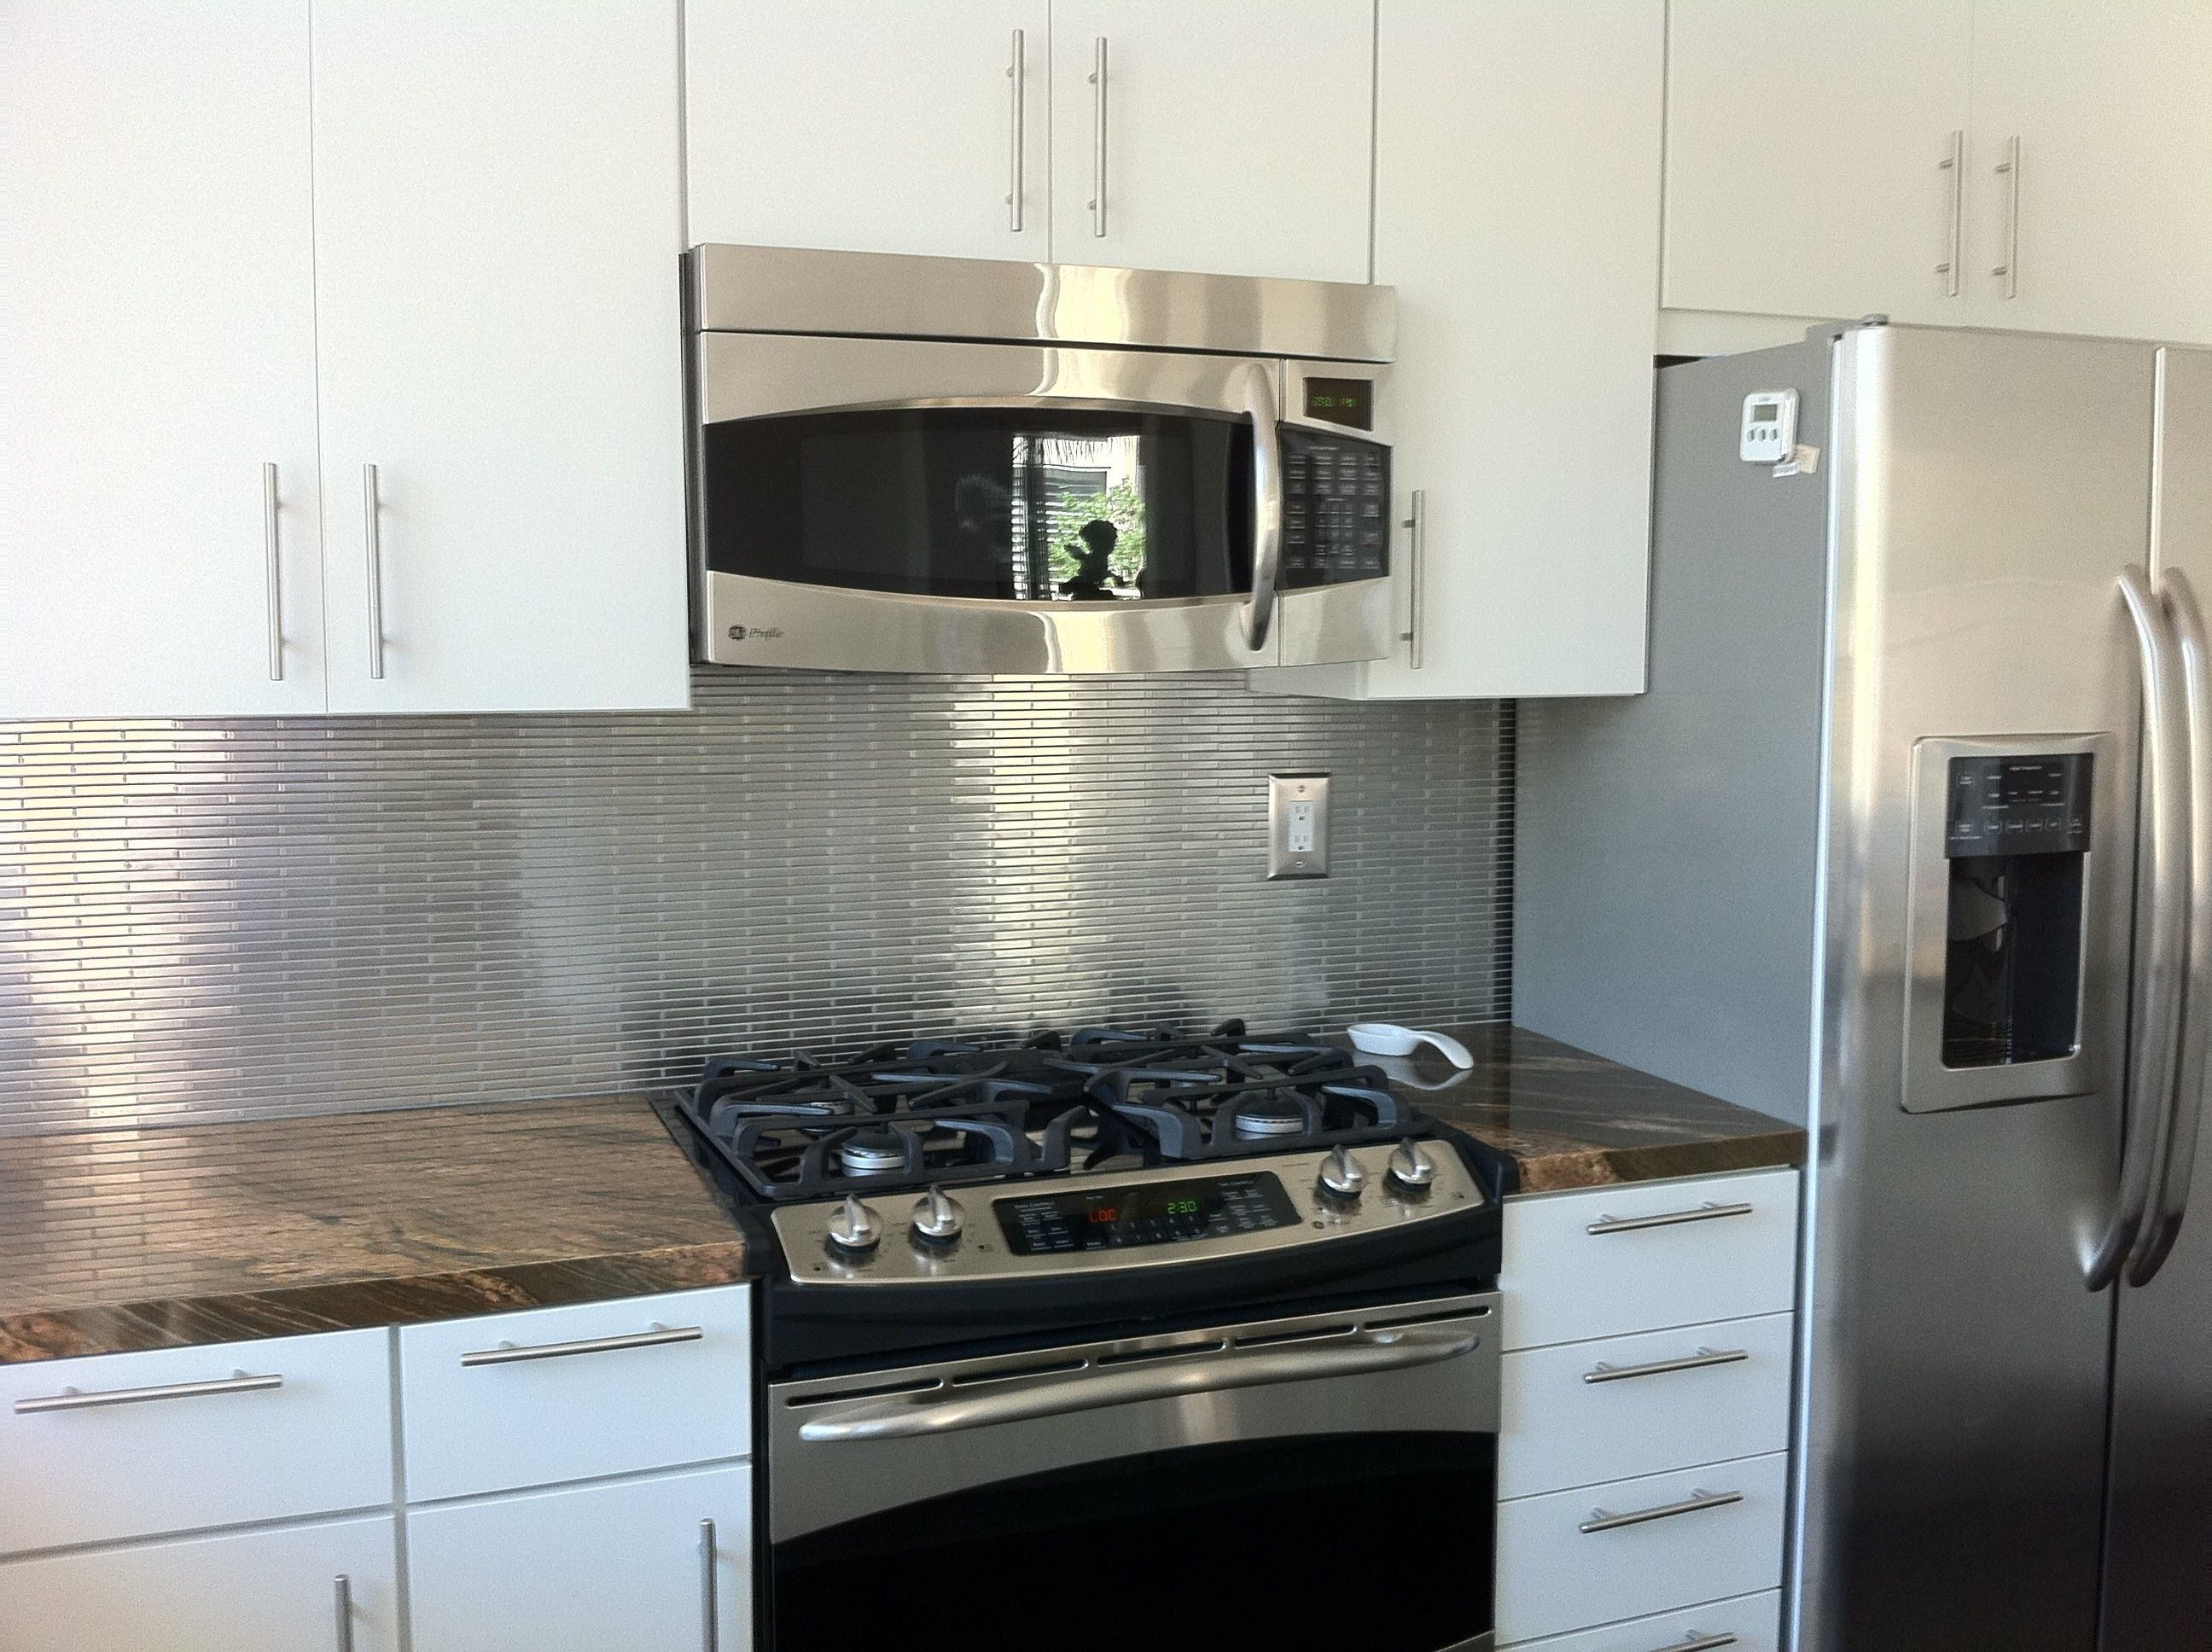 Metallic Kitchen Wall Tiles Outdoor Appliances Packages Metal Silver Stainless Steel 3 8x4 Stick Brick Tile Rv